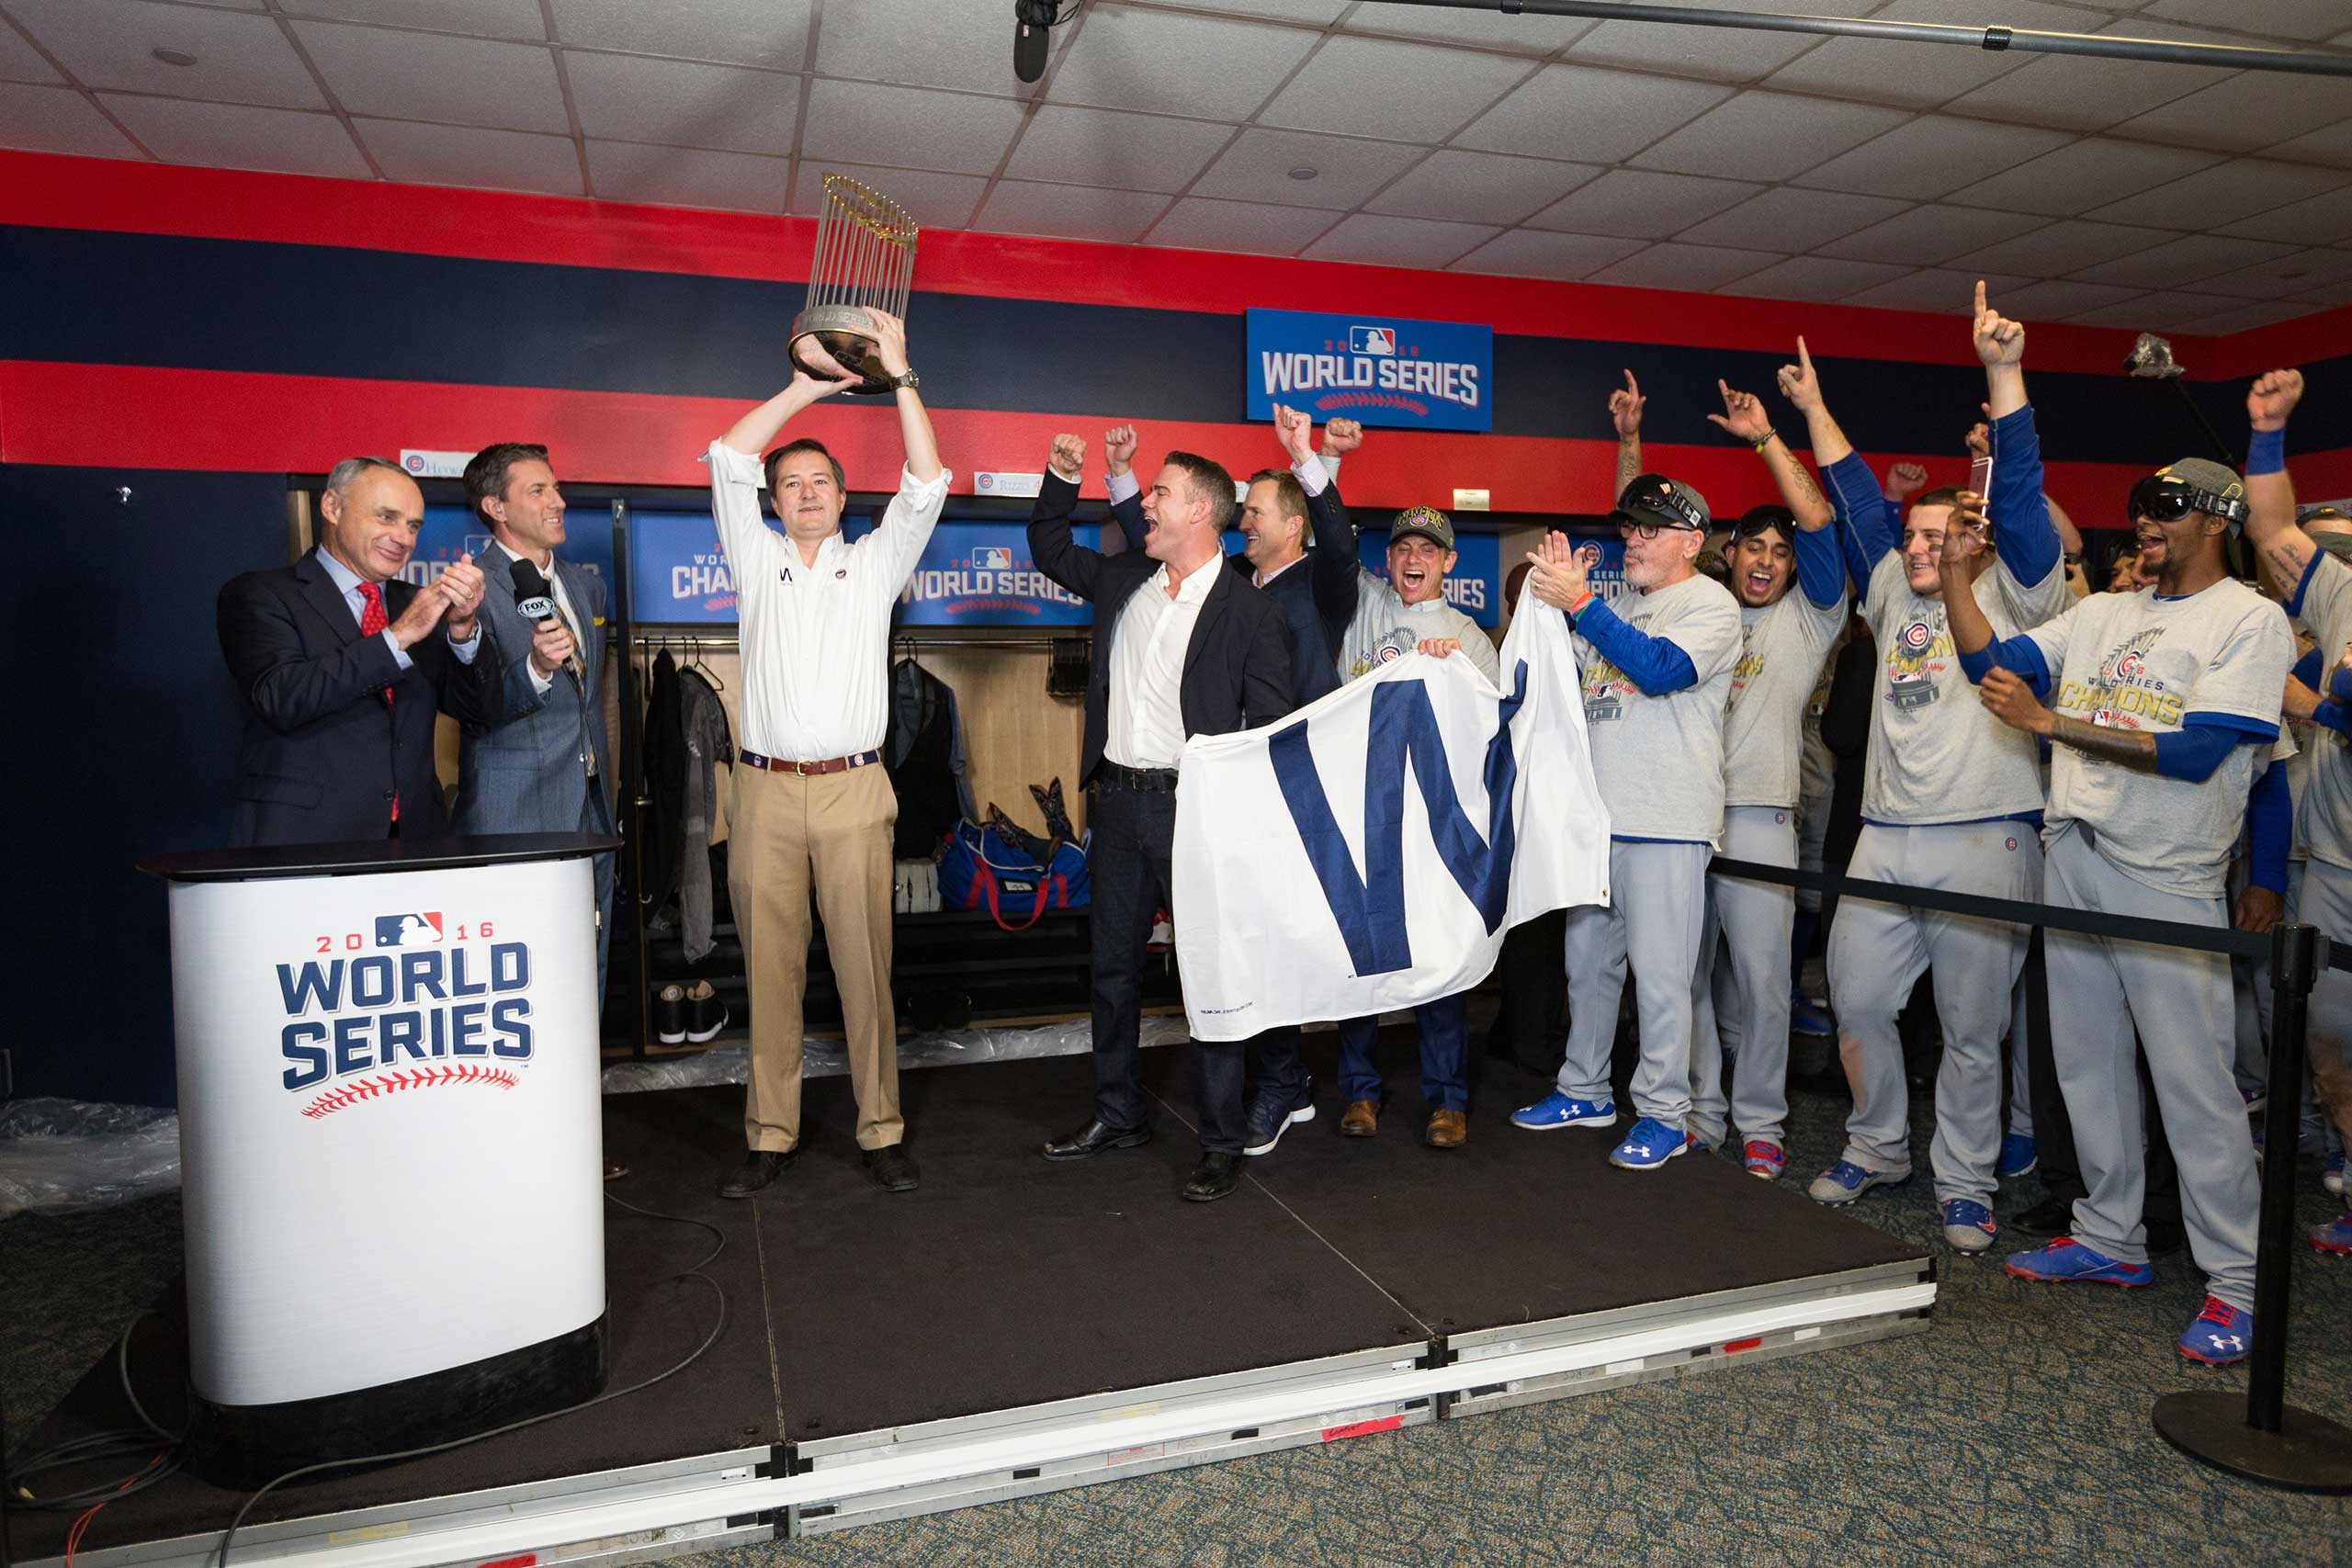 Chicago Cubs owner Tom Ricketts lifts up the World Series trophy after the Cubs win their first championship title since 1908, Nov. 2, 2016.